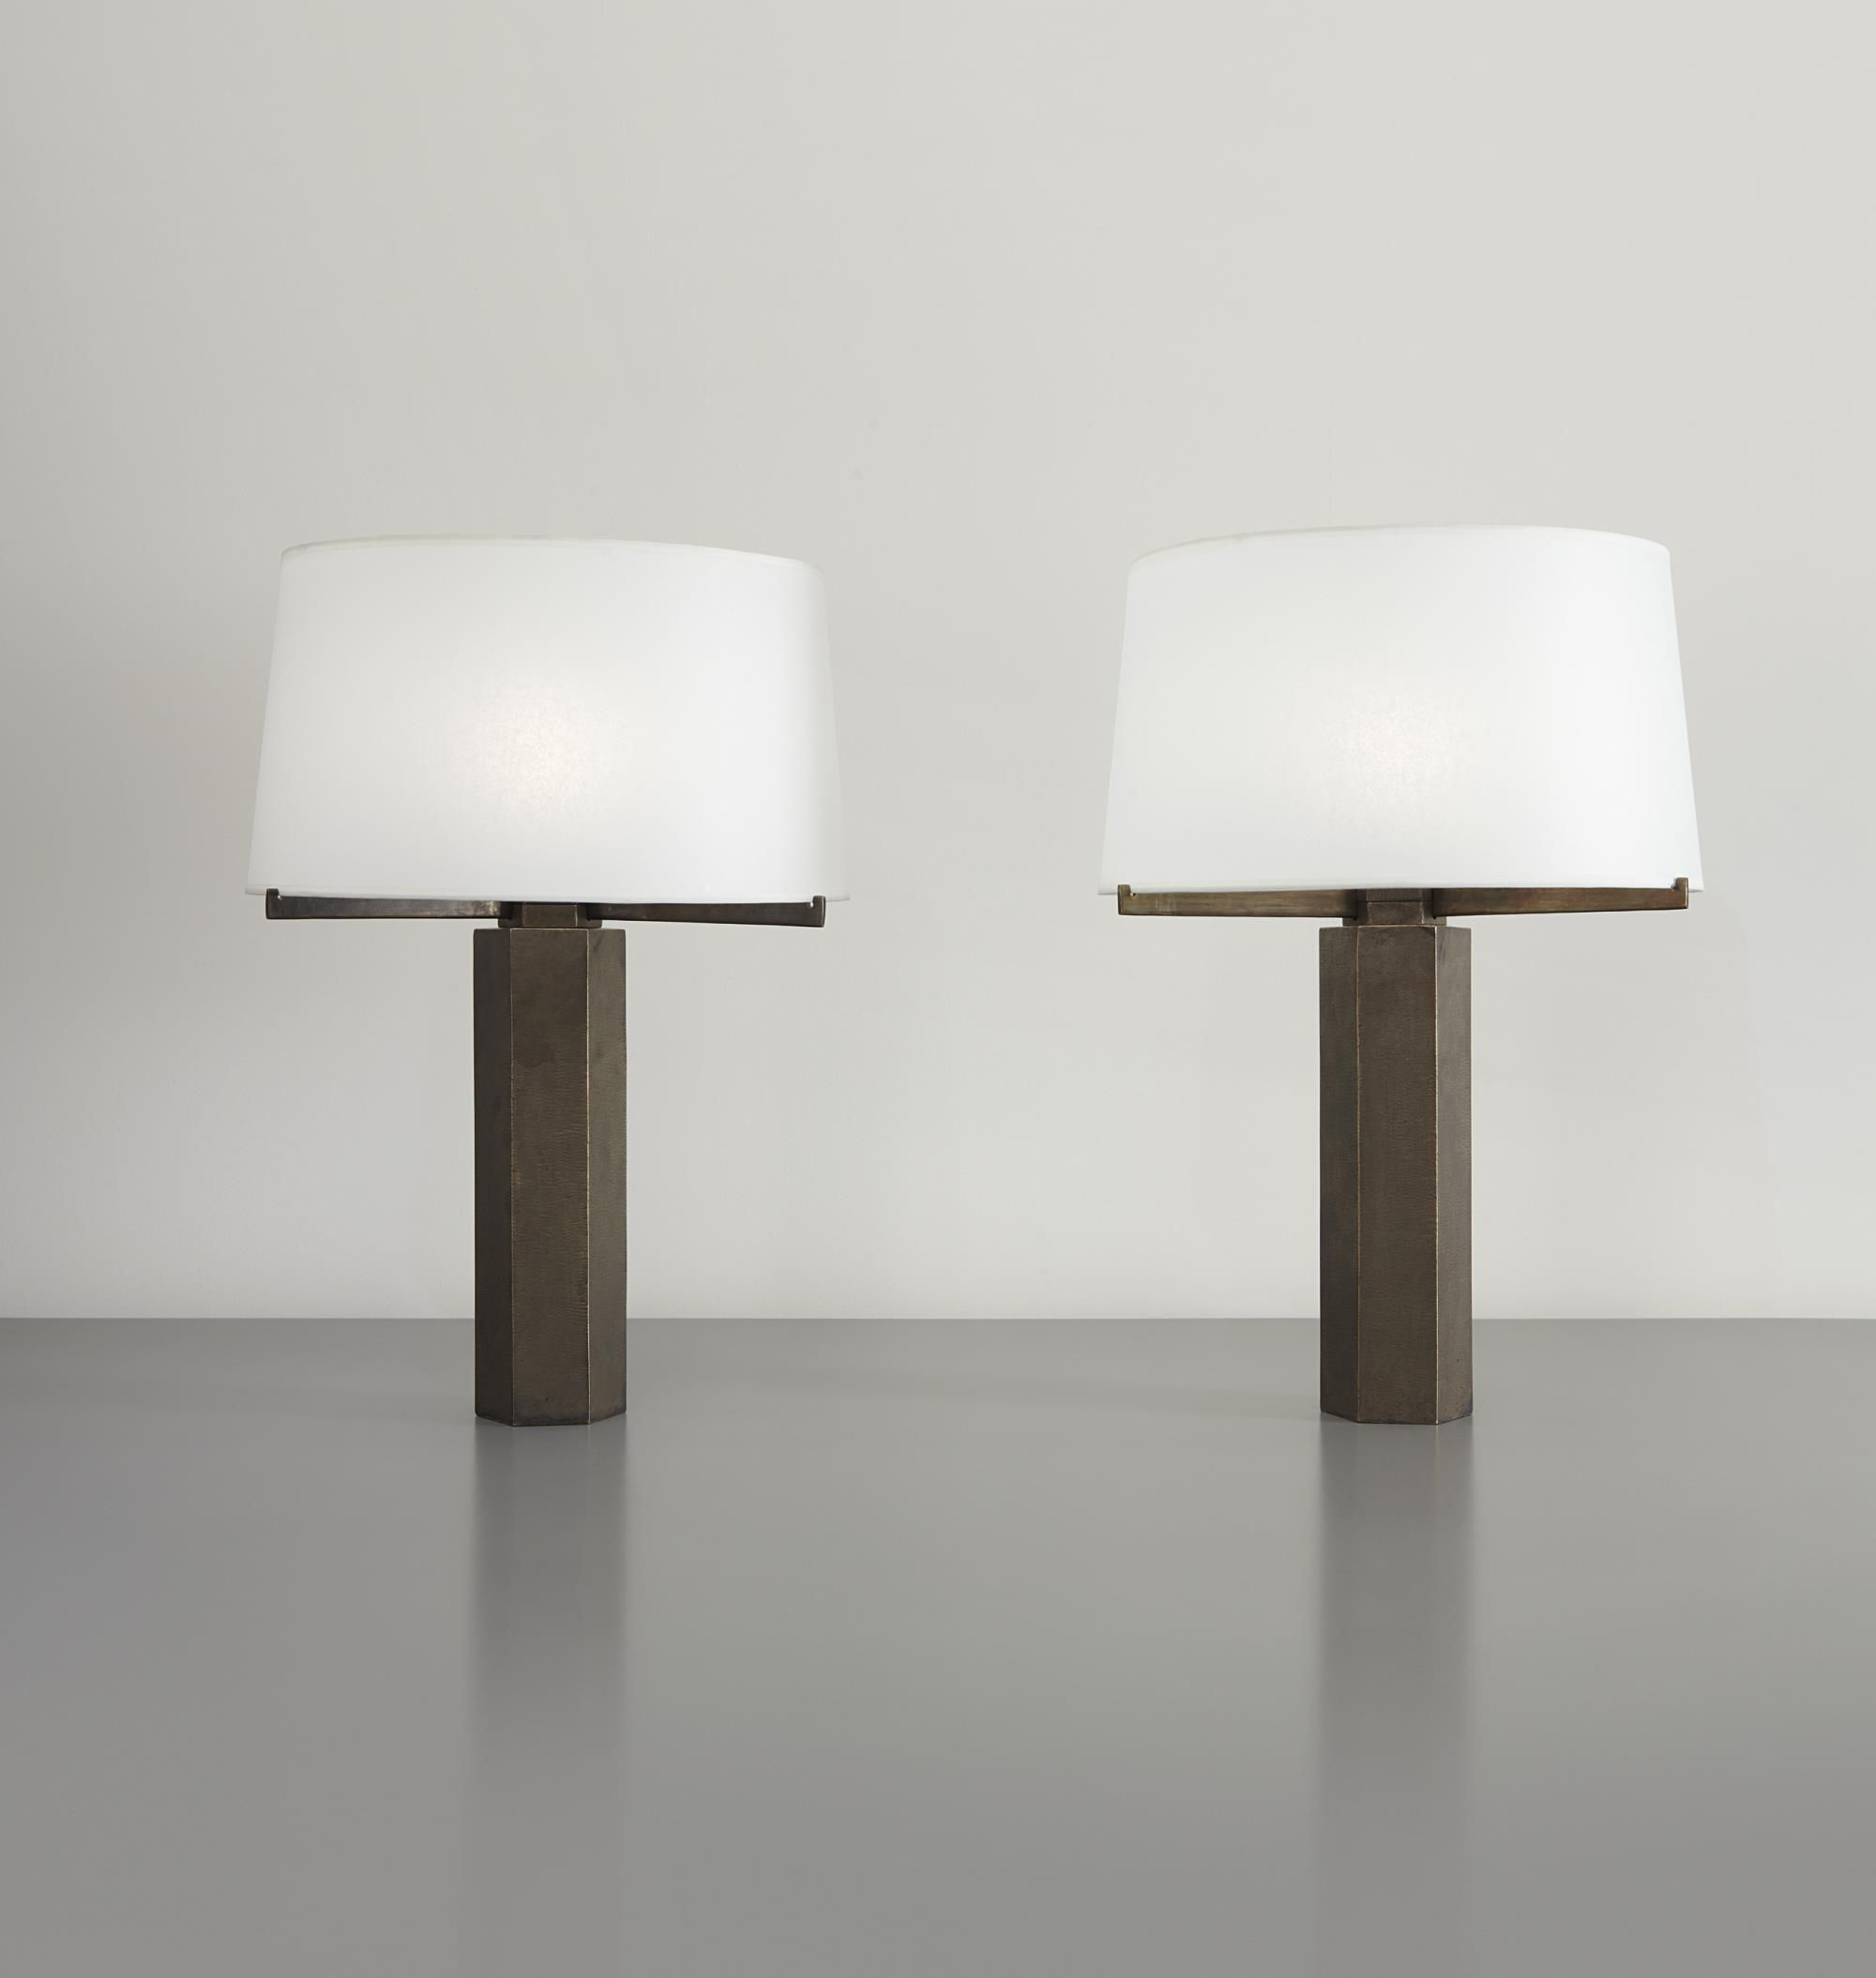 JULES WABBES Pair Of Table Lamps, Circa 1970 Bronze, Synthetic Vellum (2)